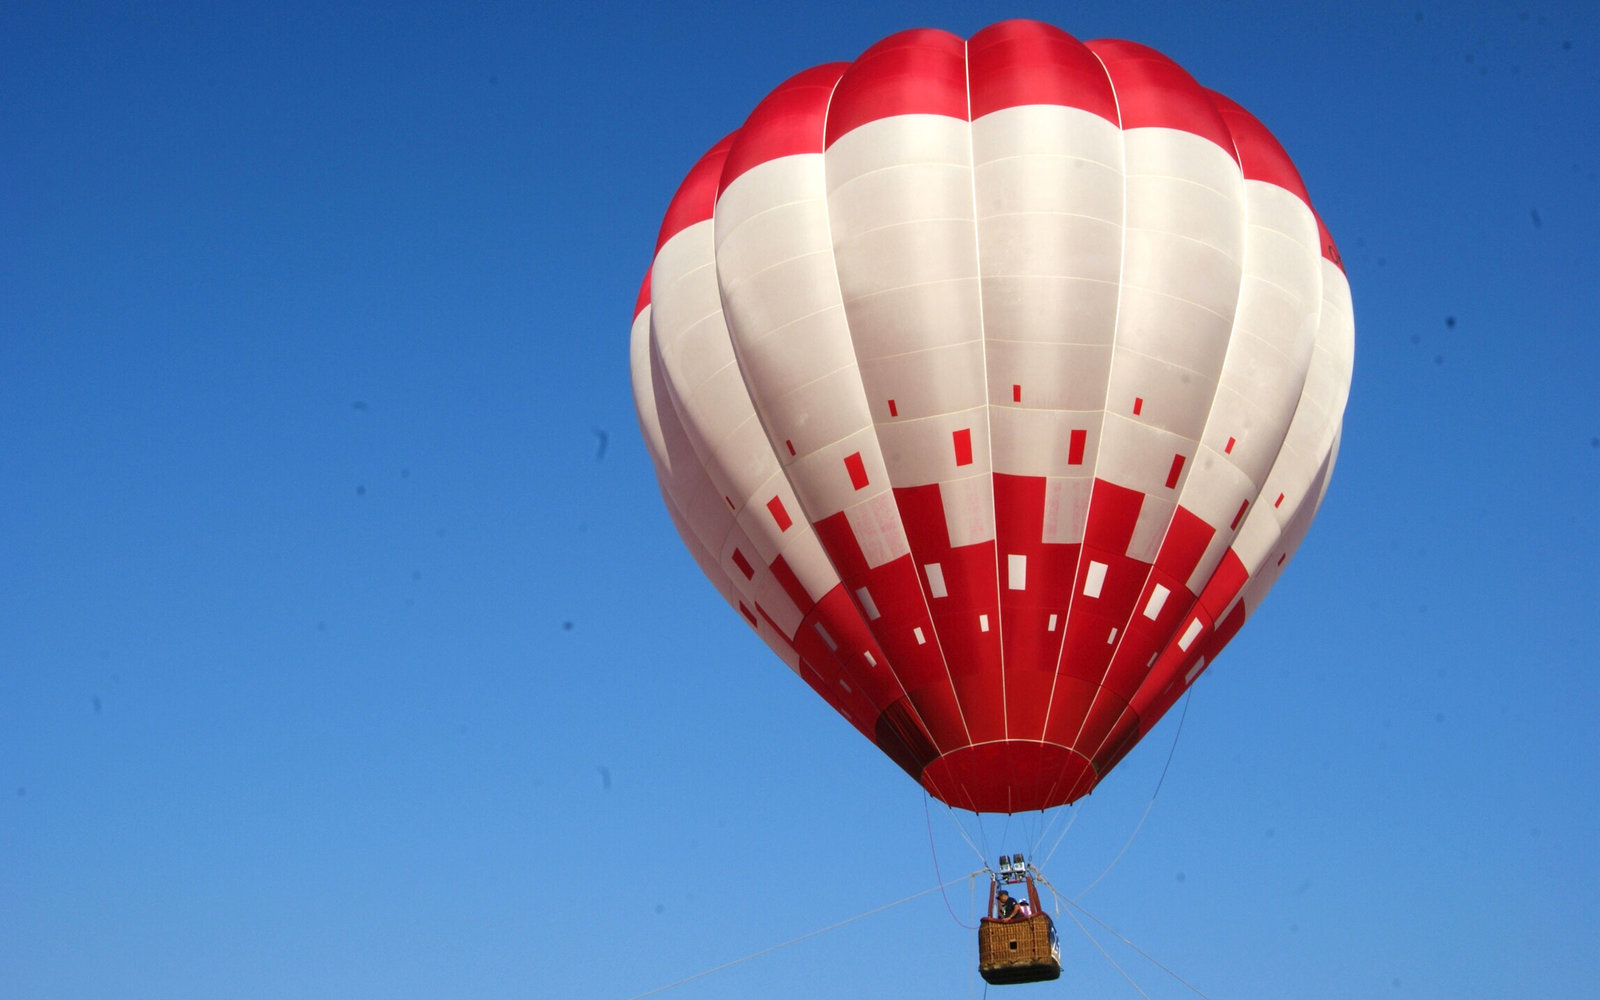 Russian adventurer attempts to set world record in hot air balloon ...